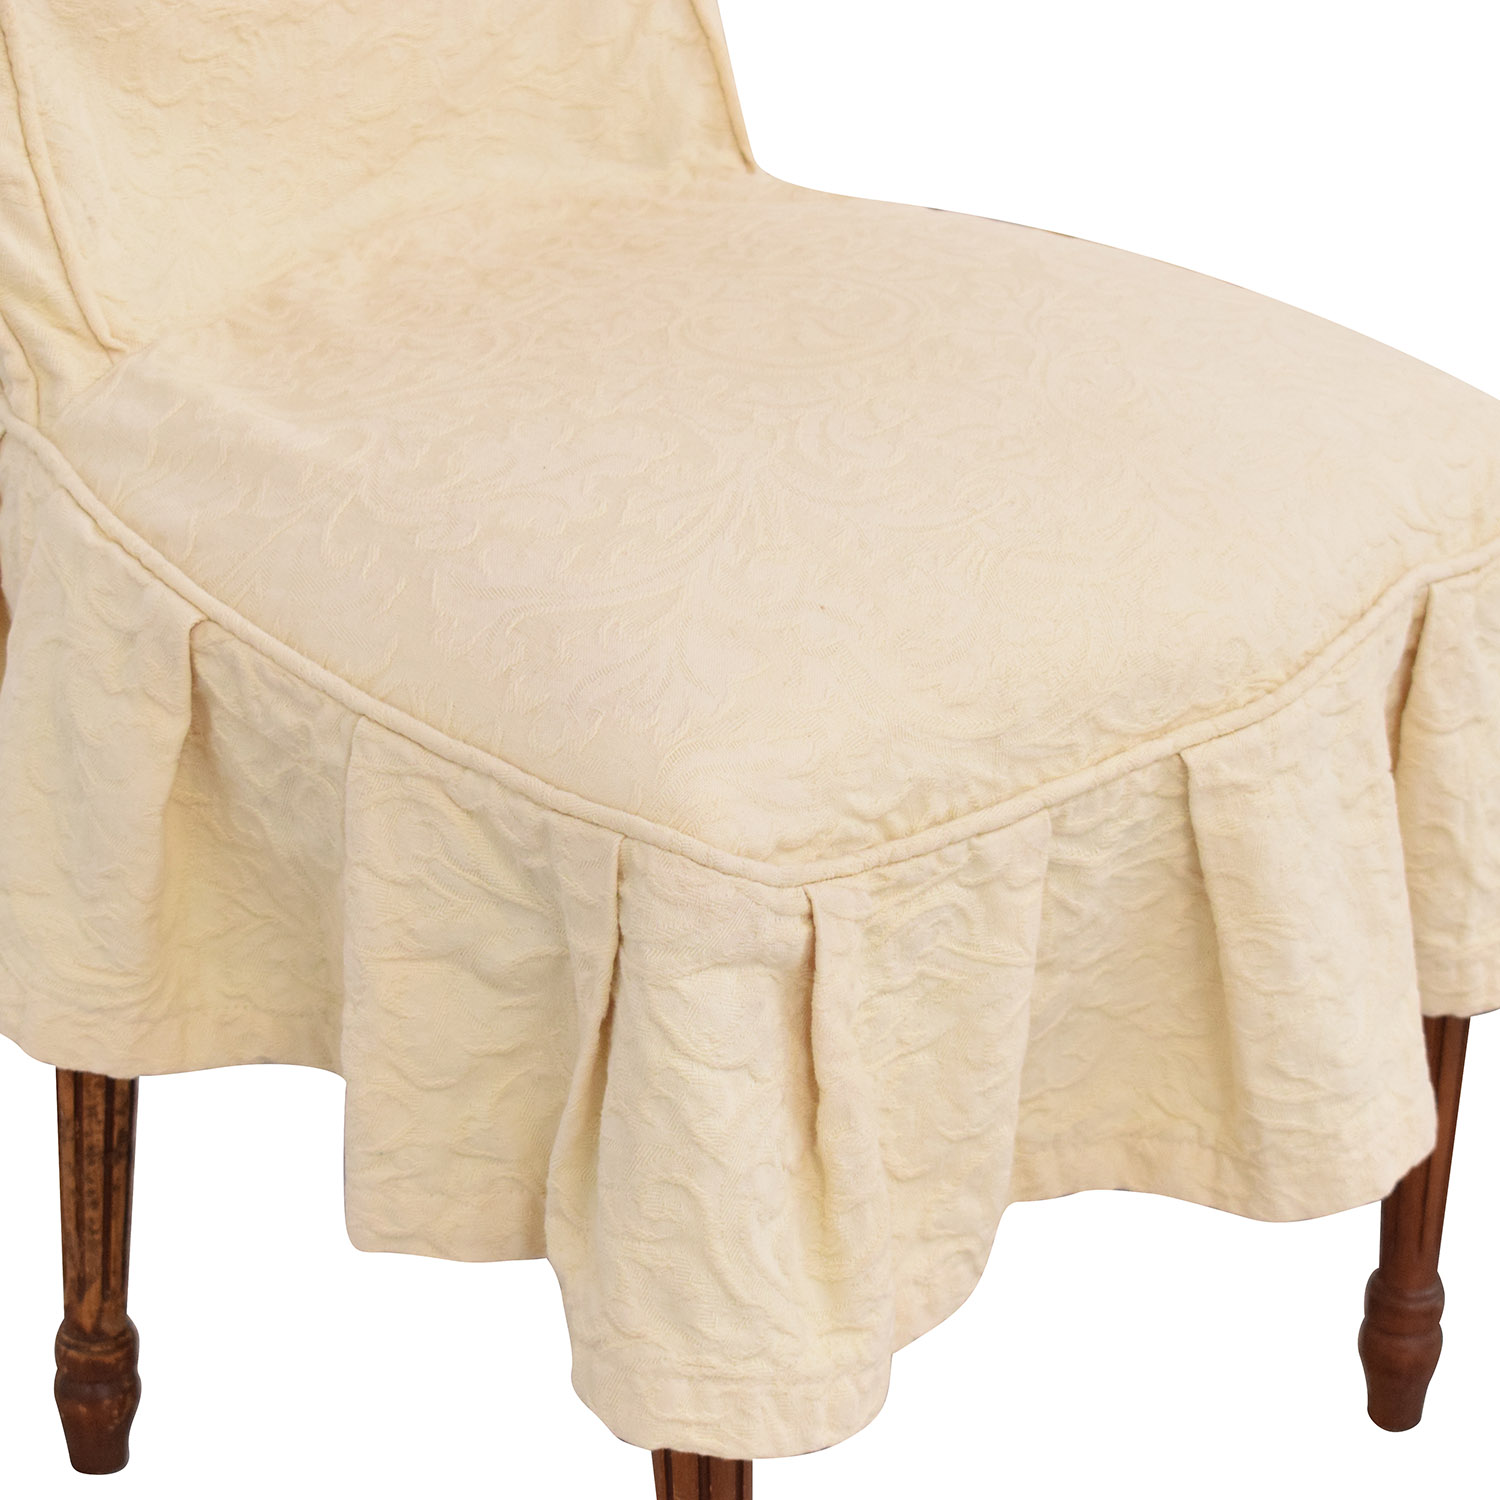 French Style Dining Chairs with Slip Covers beige and brown